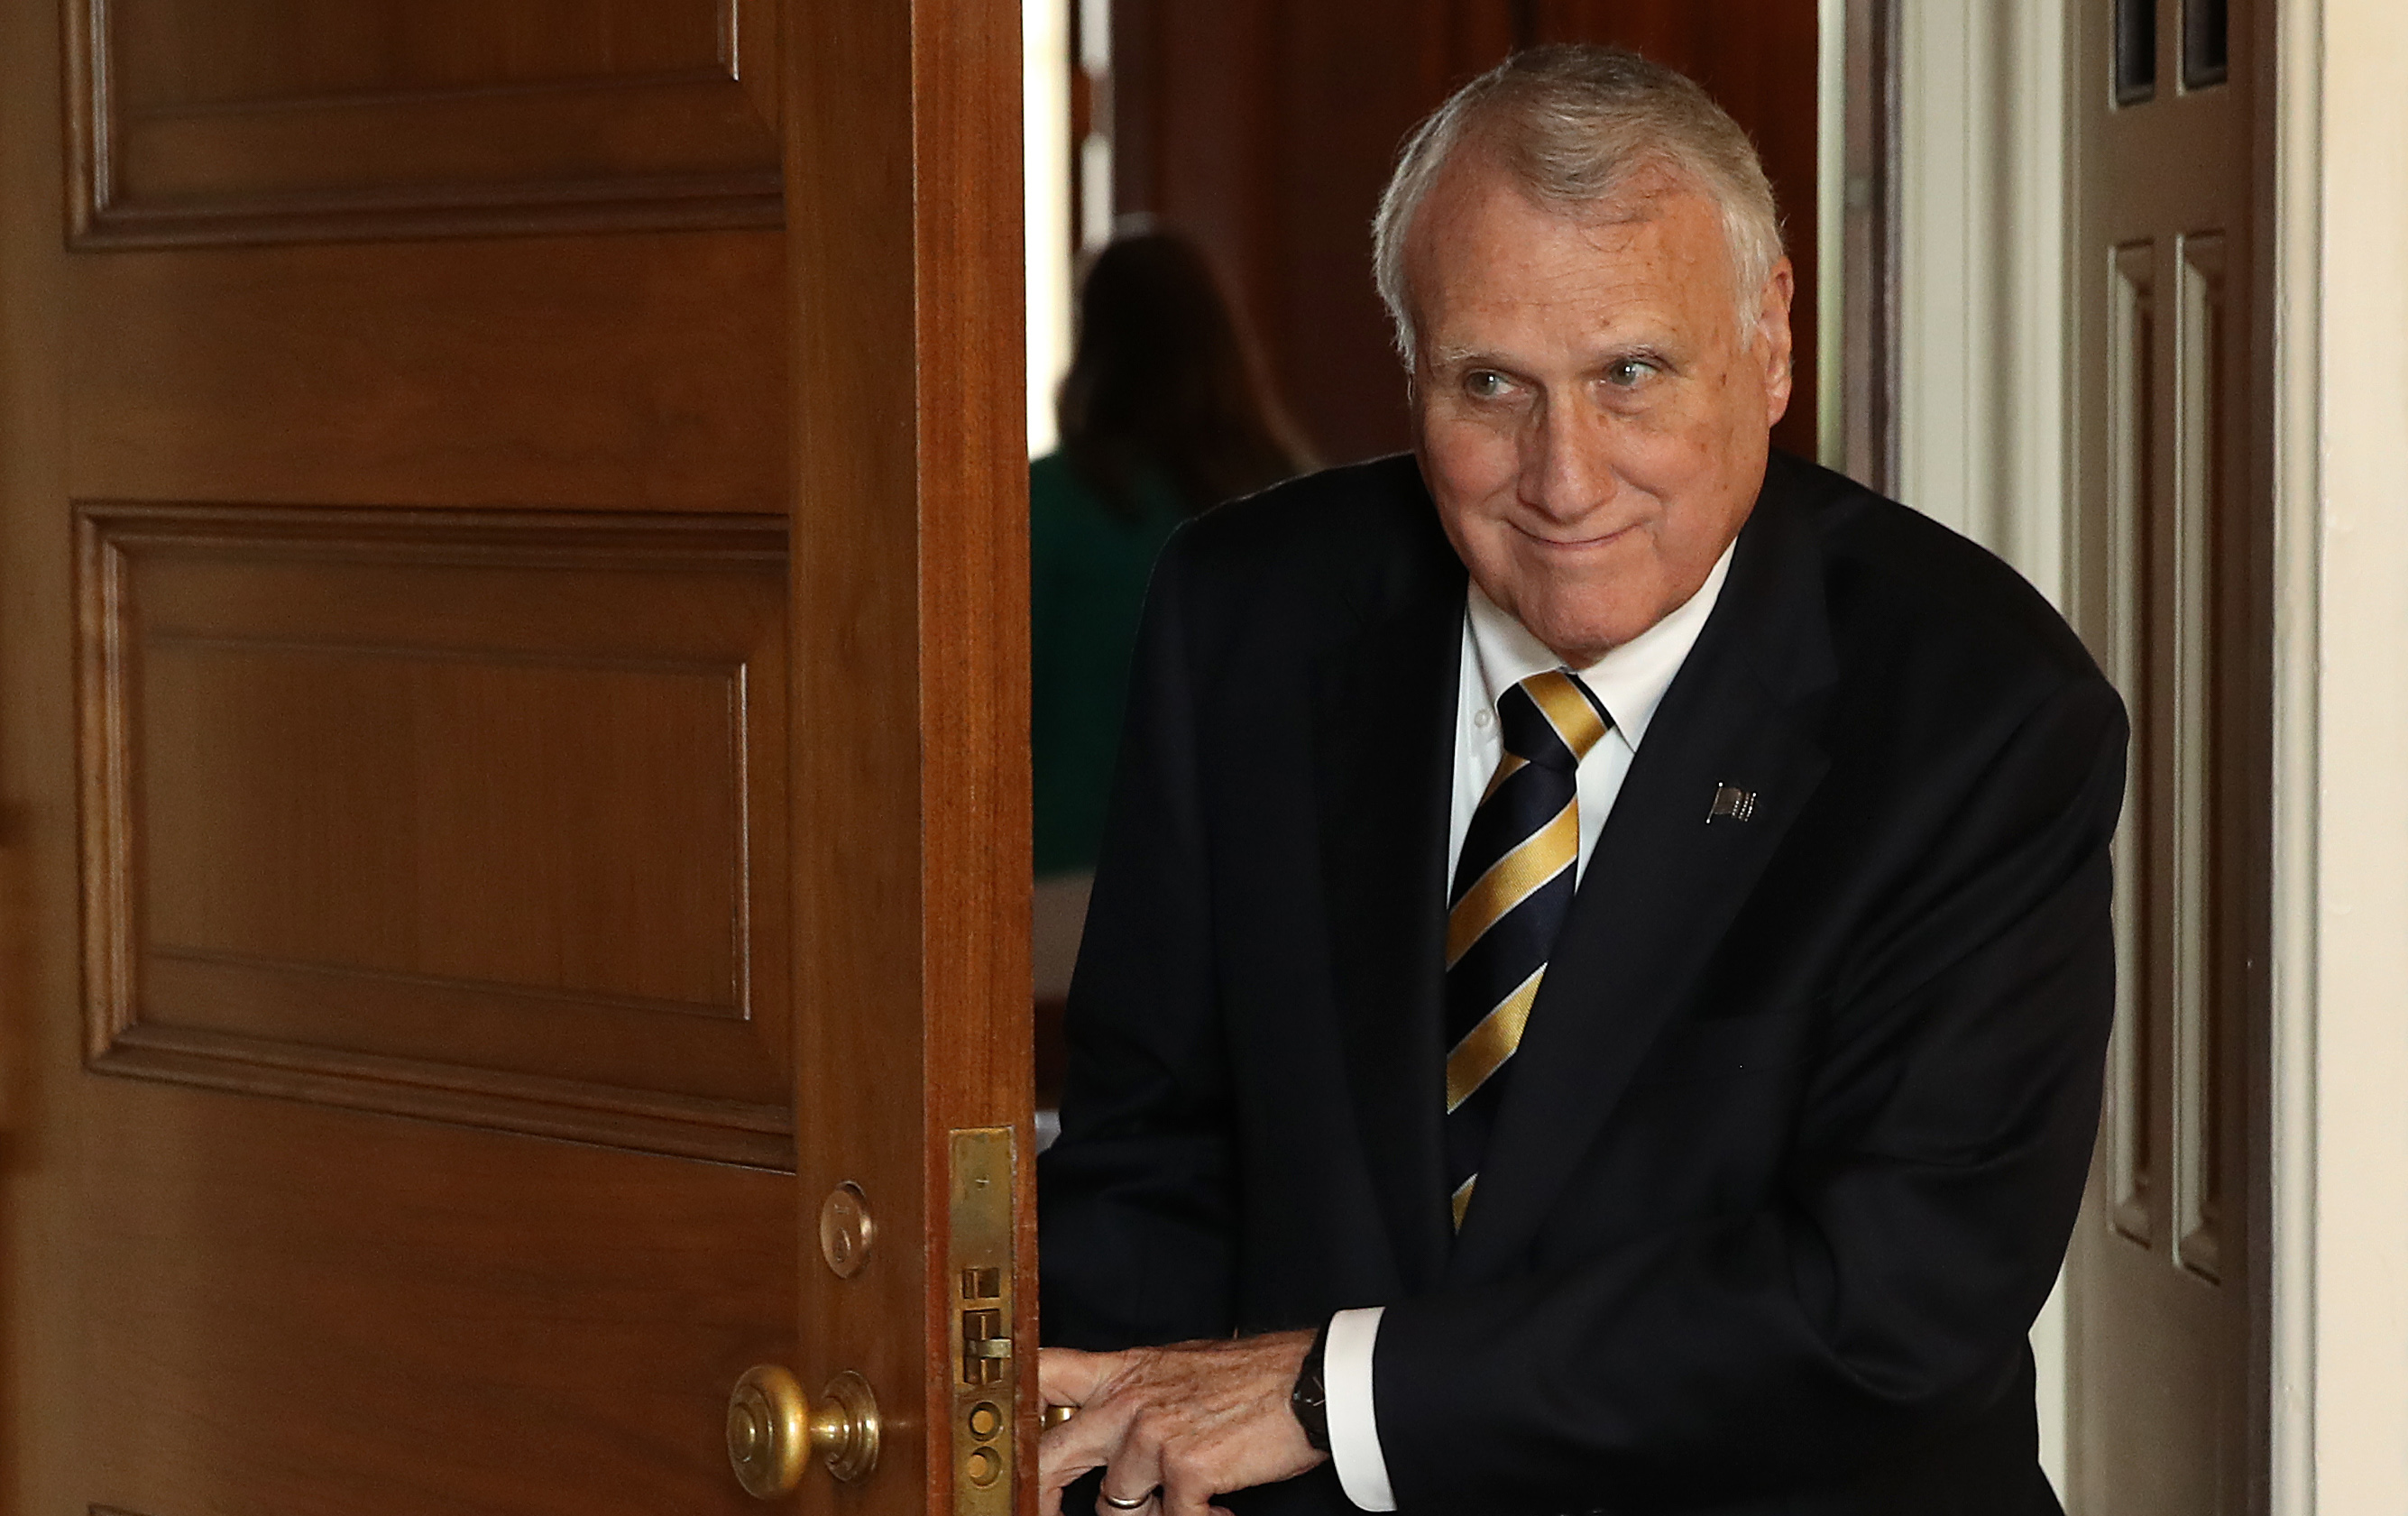 WASHINGTON, DC - SEPTEMBER 25: Sen Jon Kyl (R-AZ) departs the weekly Republican policy luncheon on September 25, 2018 in Washington, DC. Following the luncheon, Senate Majority Leader Mitch McConnell was questioned exclusively about the pending hearing featuring Supreme Court nominee Brett Kavanaugh and Christine Blasey Ford during the brief press conference.   (Photo by Win McNamee/Getty Images)